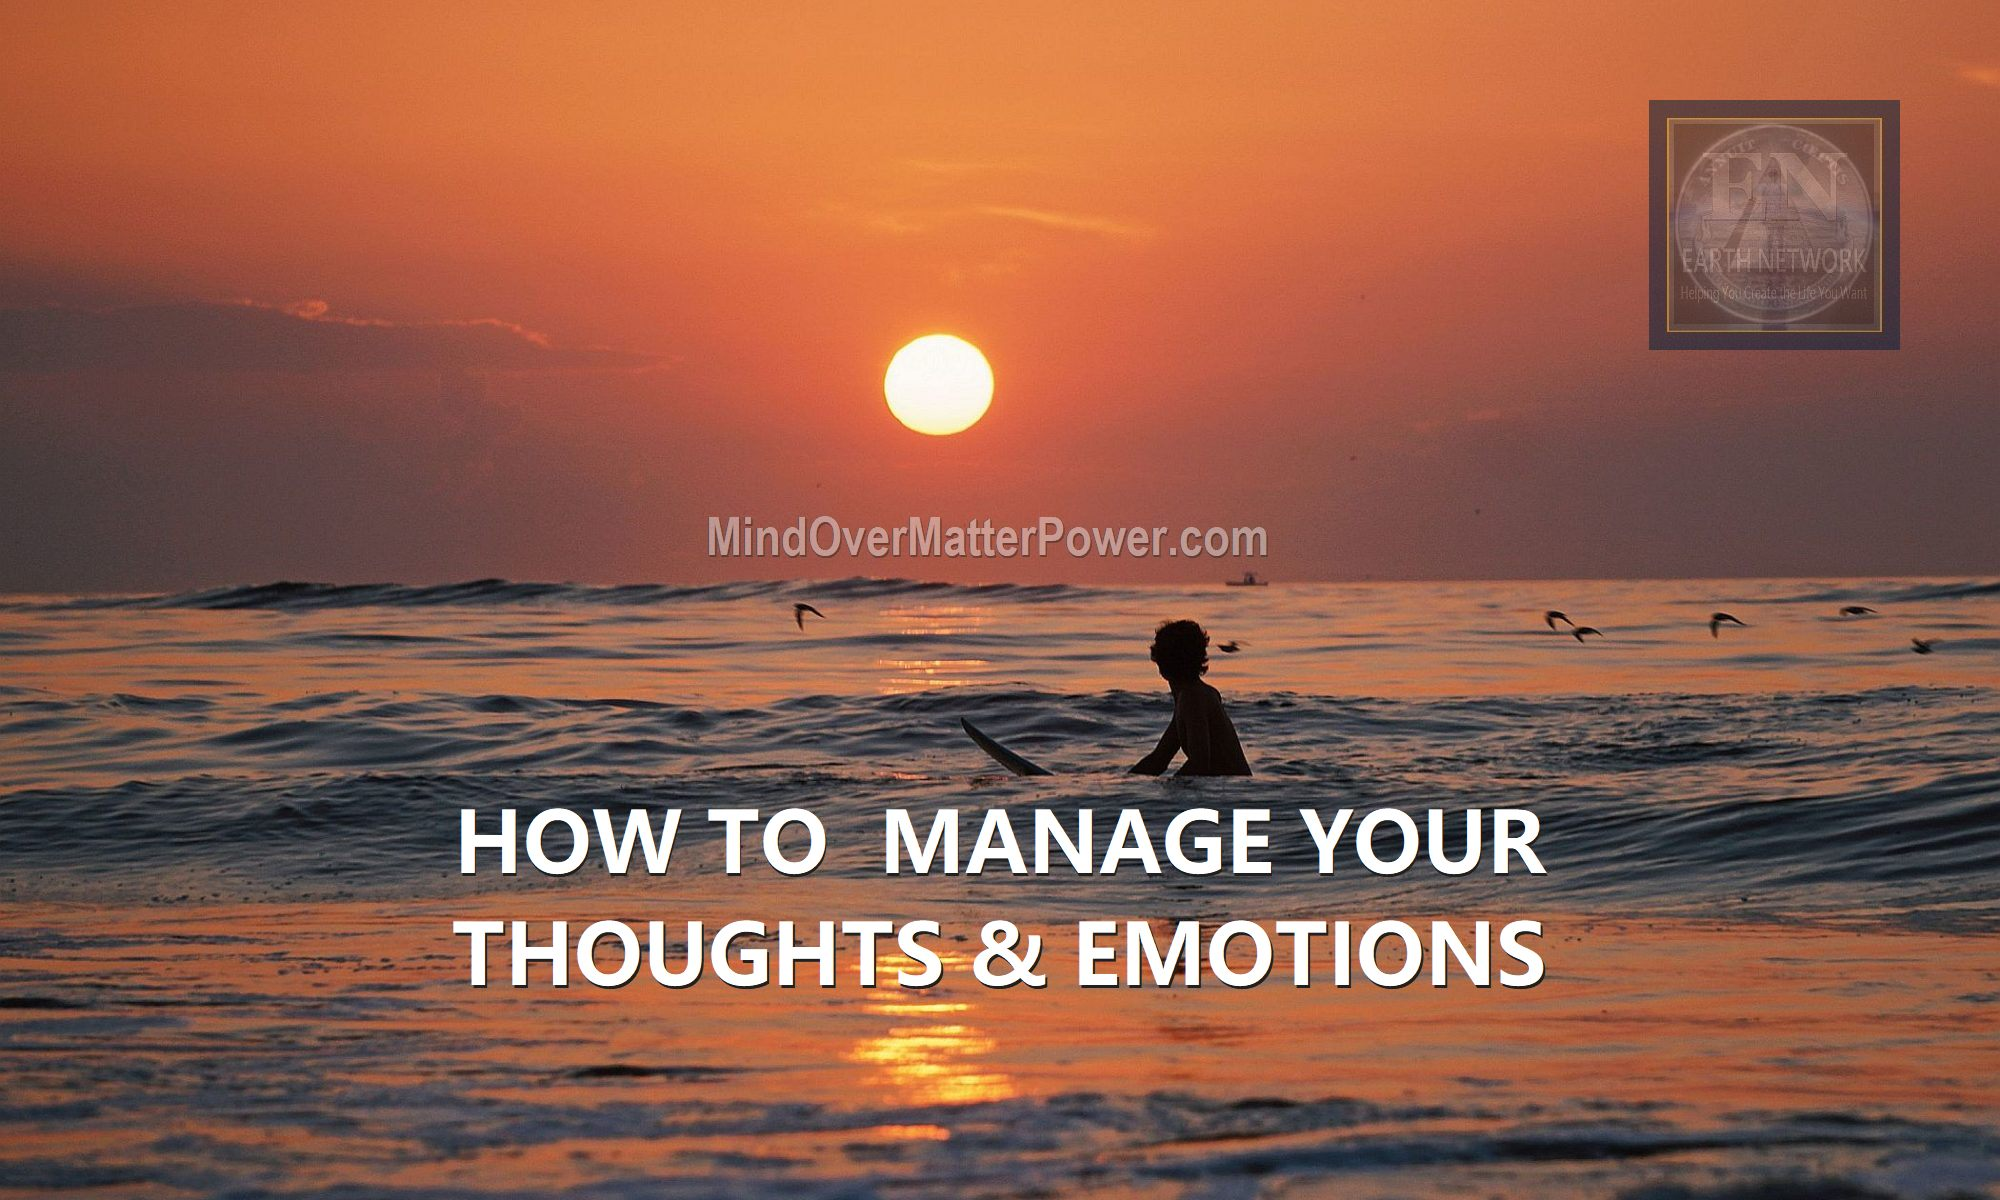 thoughts-generate-emotions-dwell-on-the-positive-you-get-what-you-focus-on-illustration